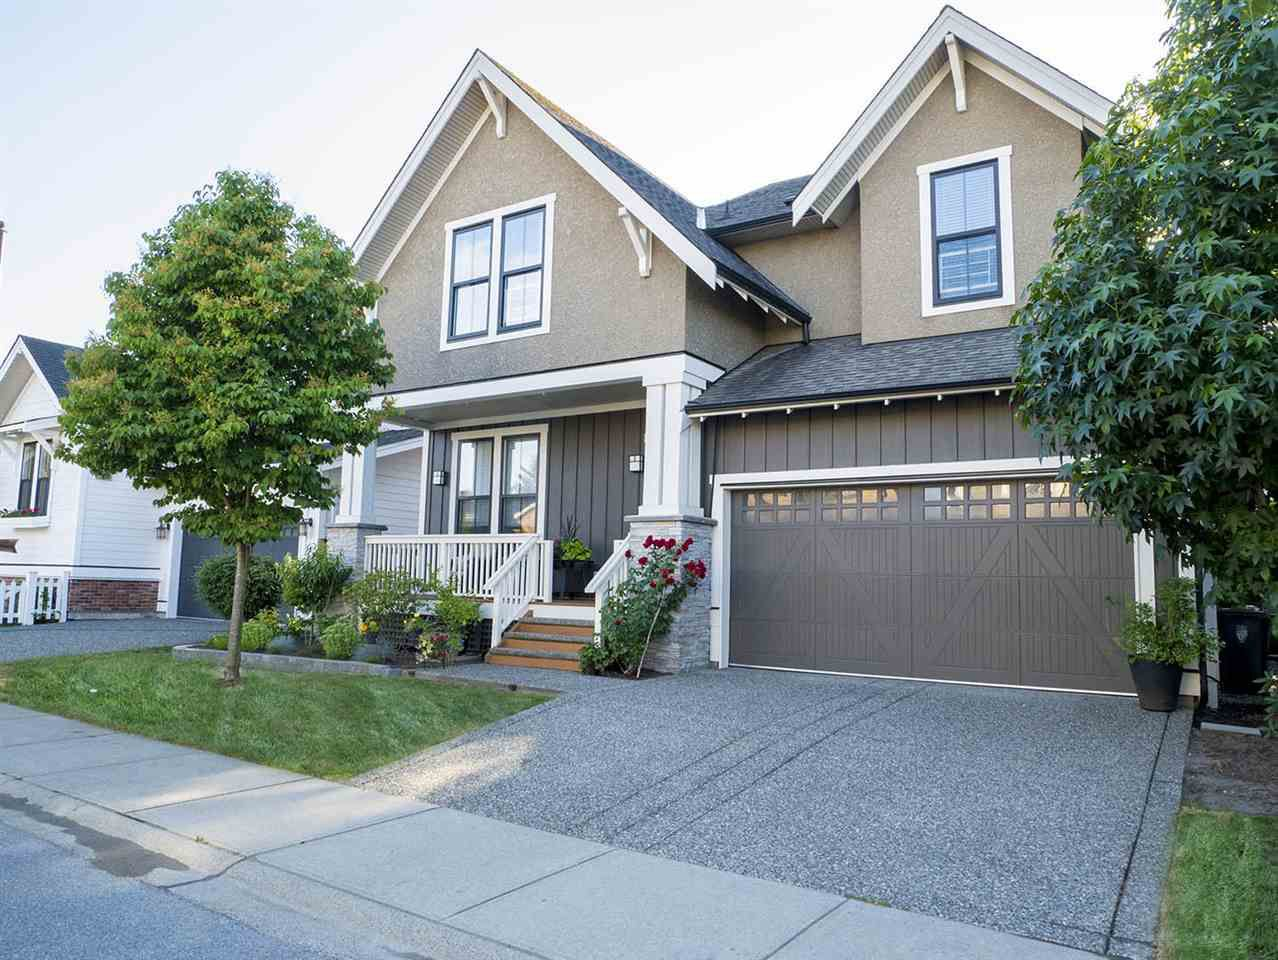 Main Photo: 9393 WASKA Street in Langley: Fort Langley House for sale : MLS®# R2186068